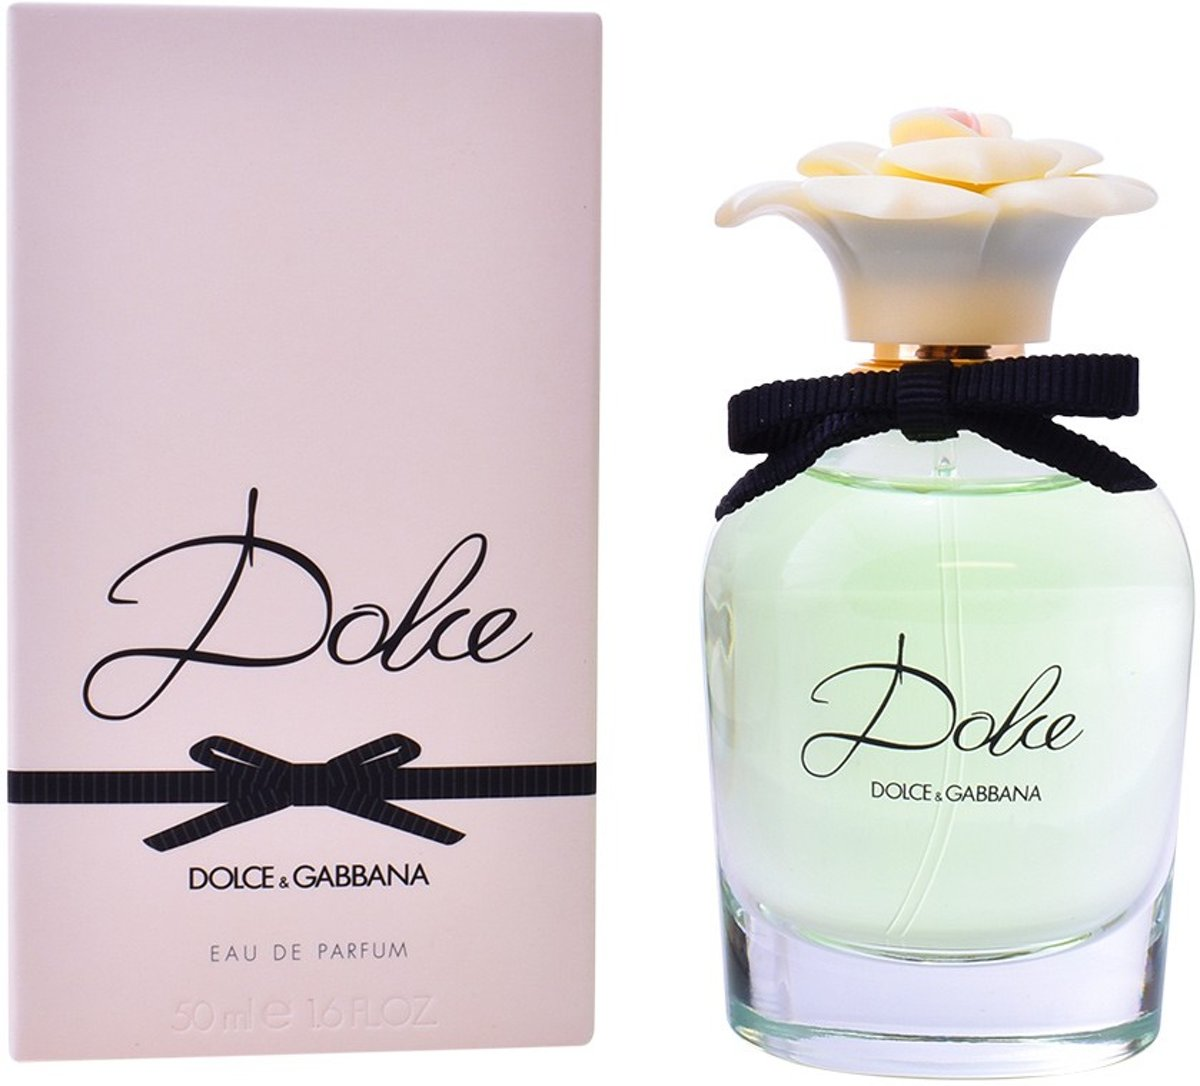 MULTI BUNDEL 2 stuks DOLCE Eau de Perfume Spray 50 ml